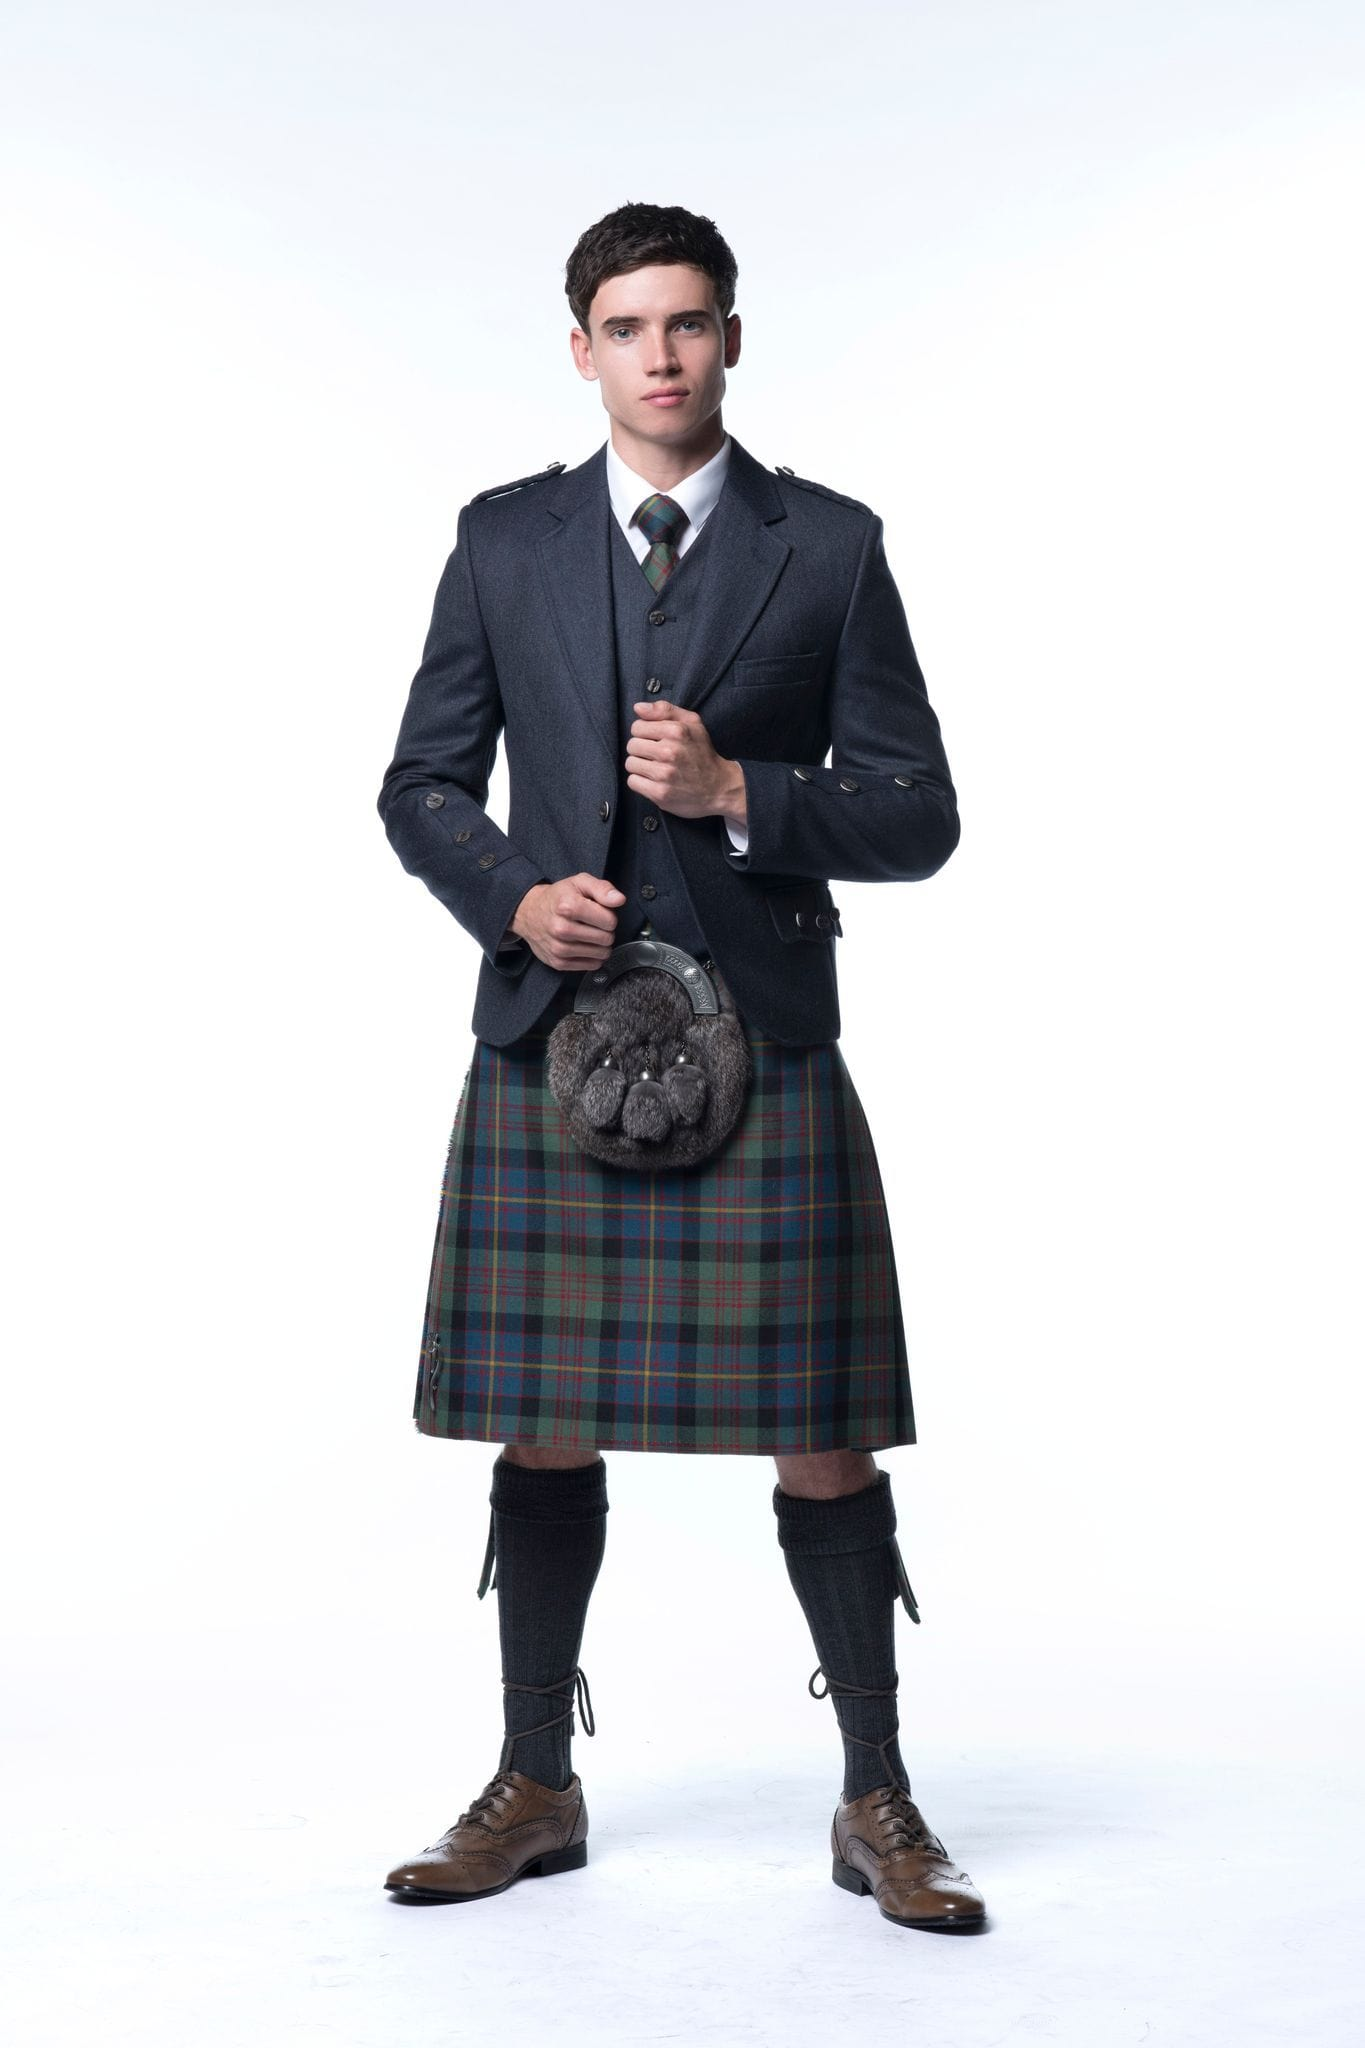 macgregorandmacduff Kilt Outfit Navy Clunie Tweed Package - Choose Your Tartan